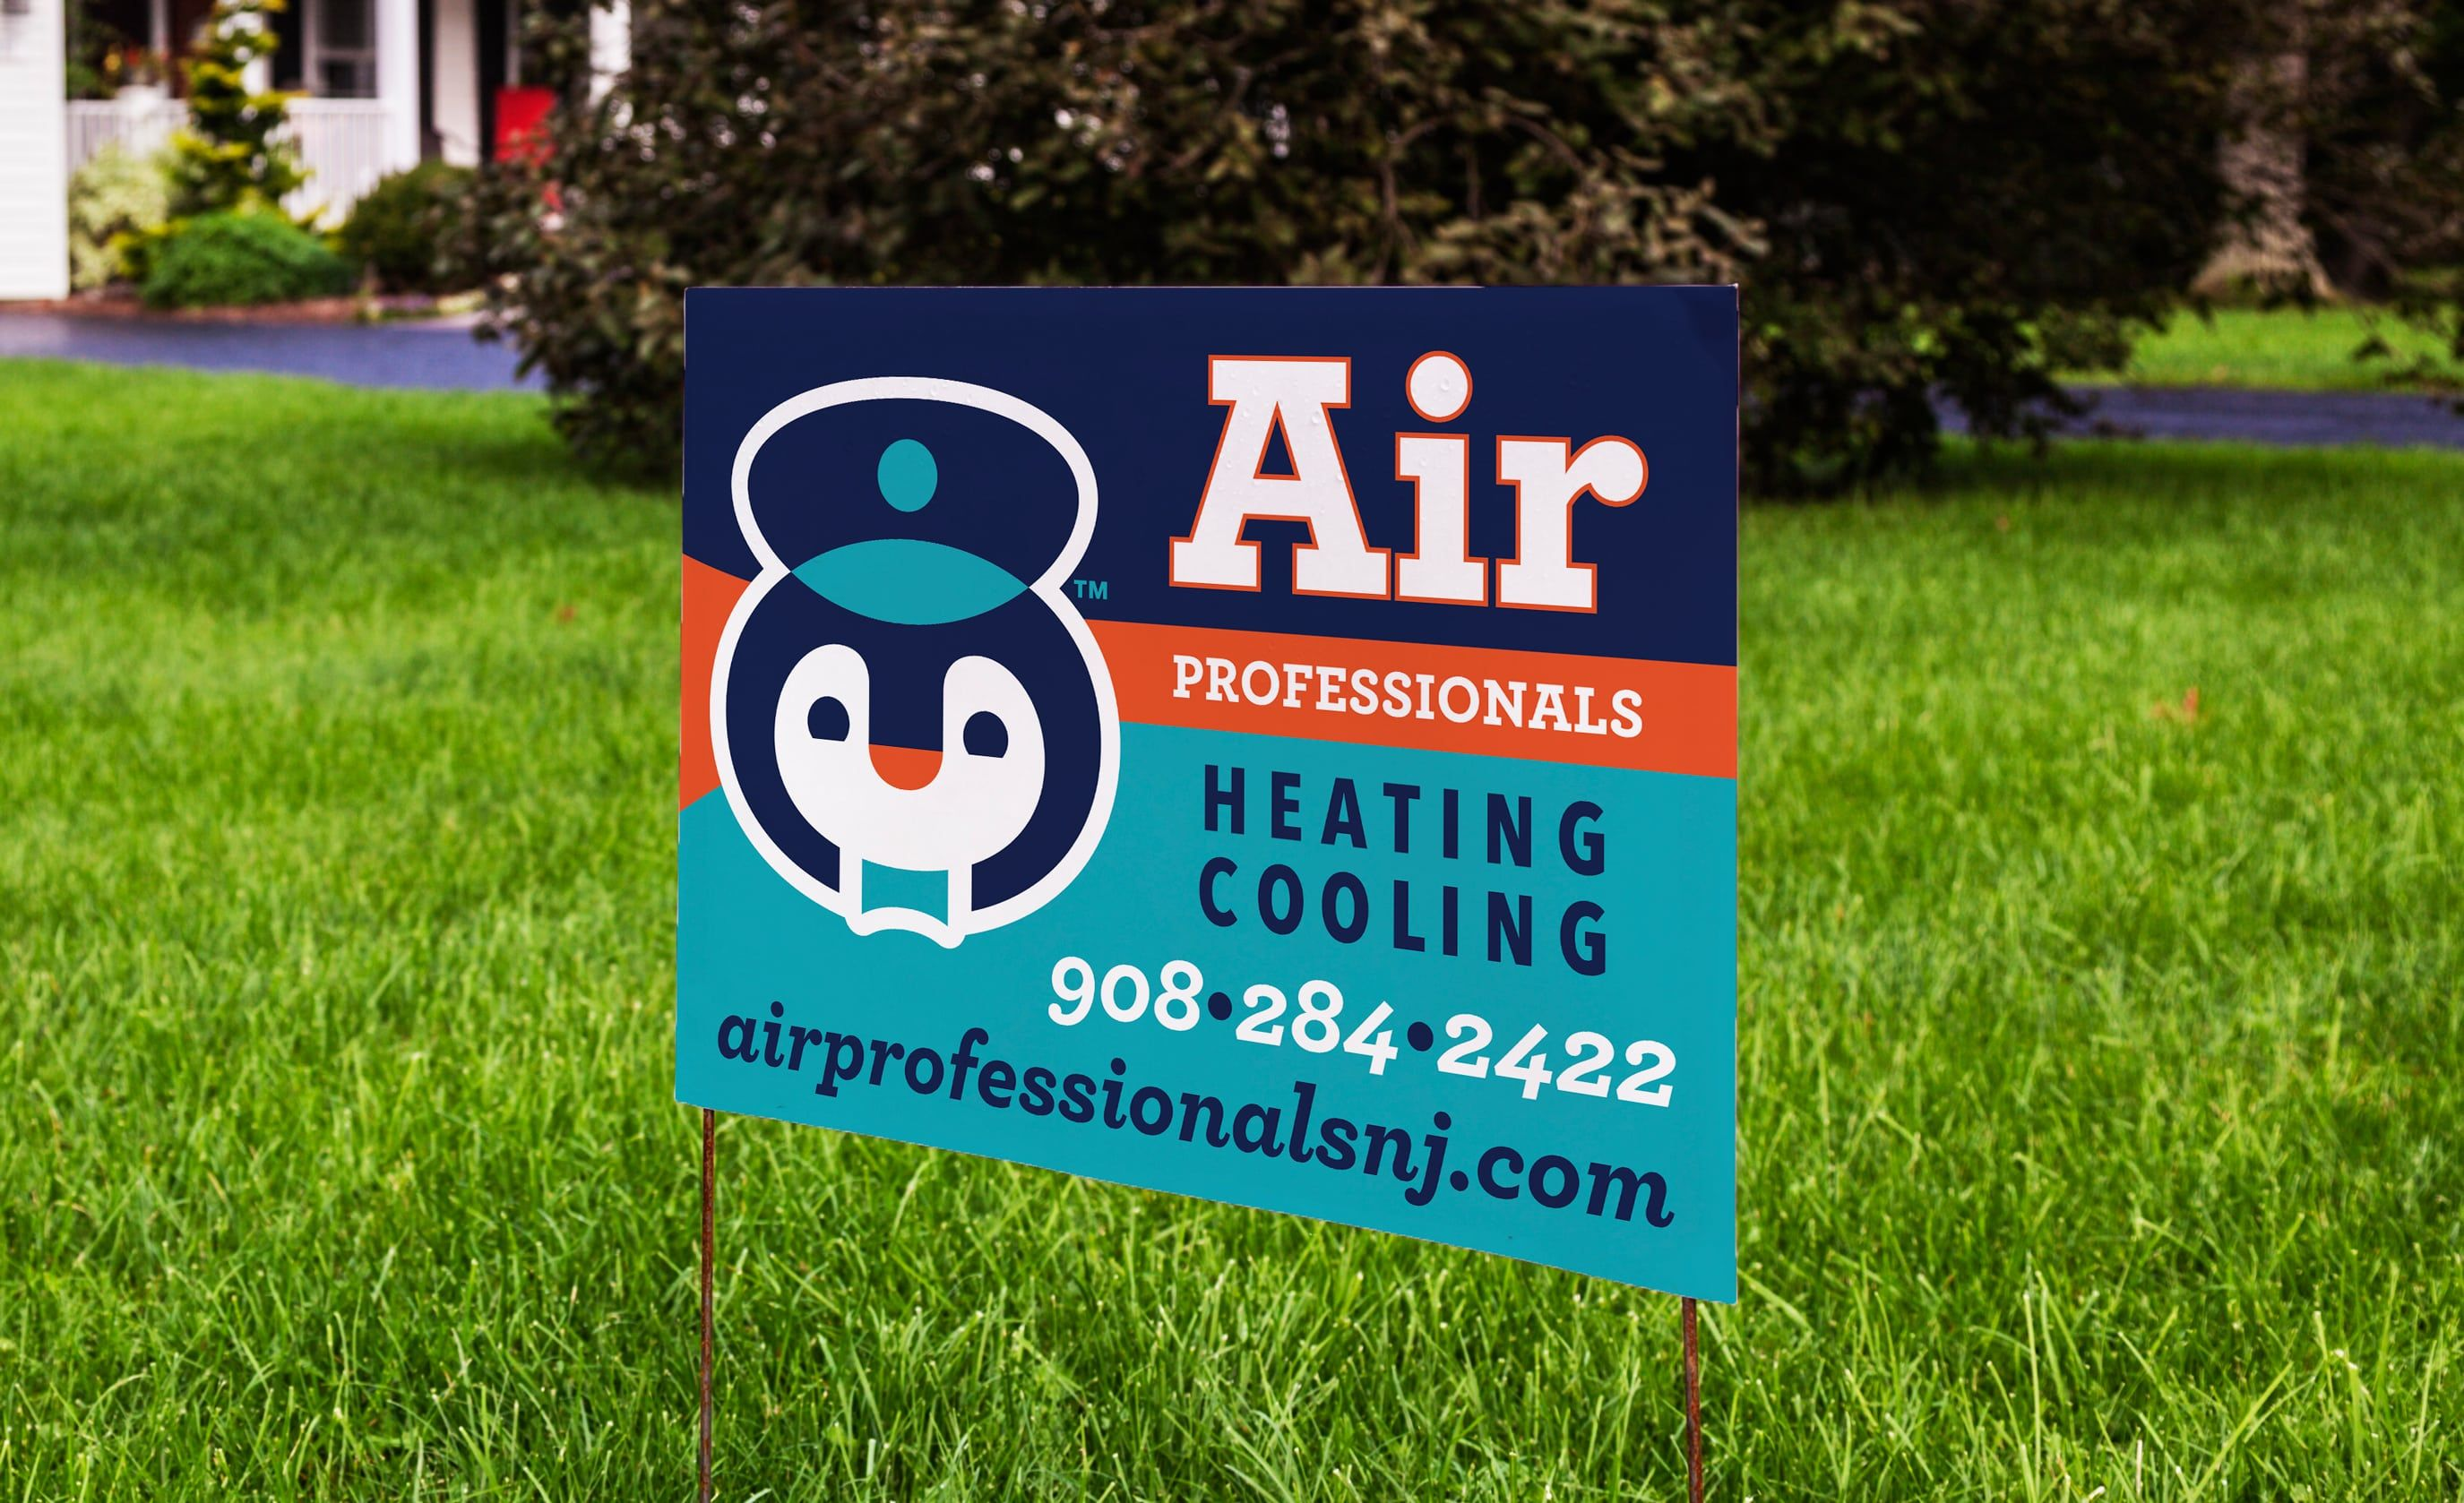 Yard Sign Design For Air Professionals Heating Cooling Nj Advertising Agency